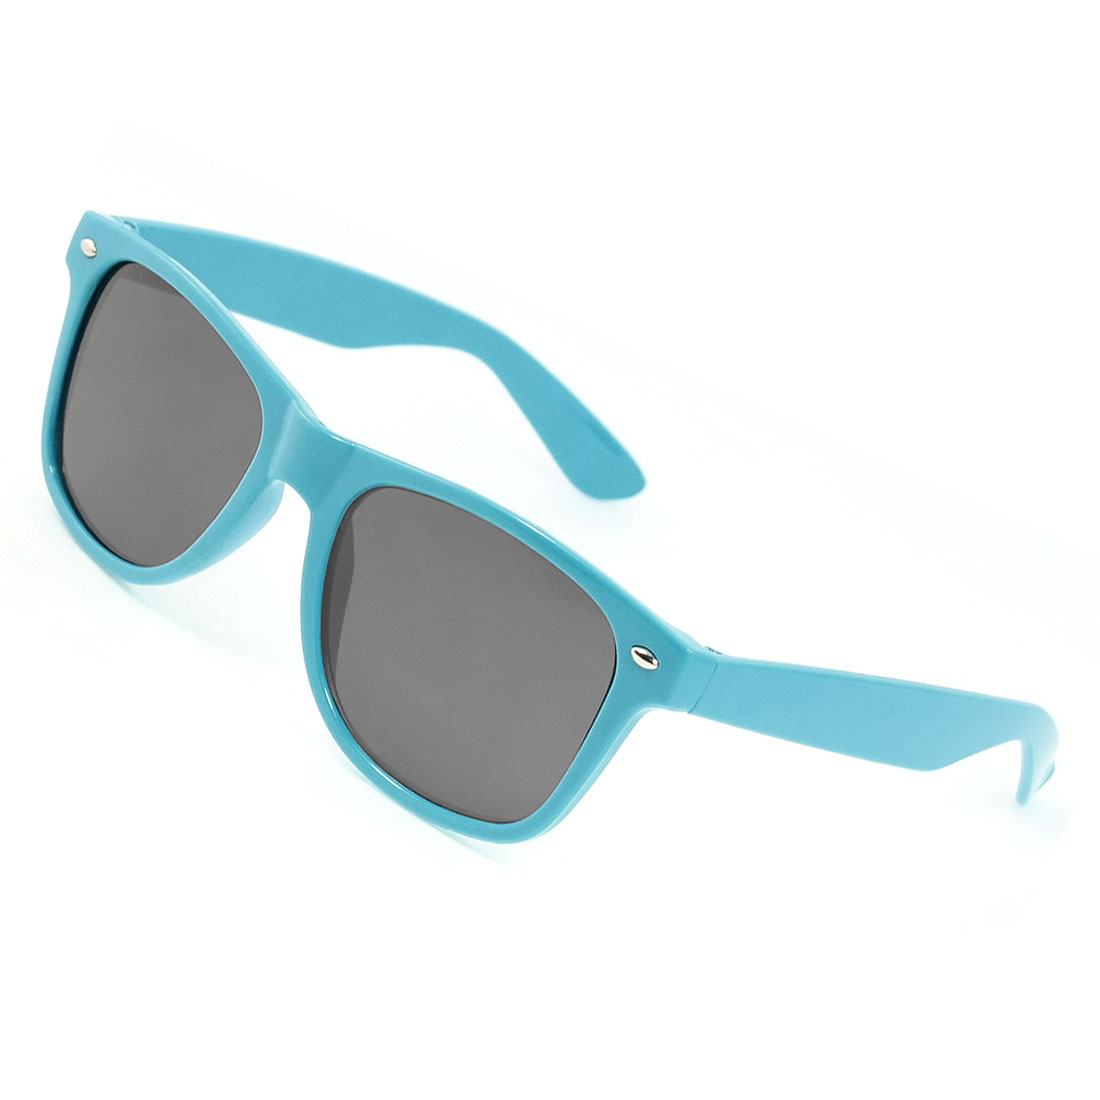 Sky Blue Folding Arms Gray Lens Full Frame Sunglasses Eyewear for Womem